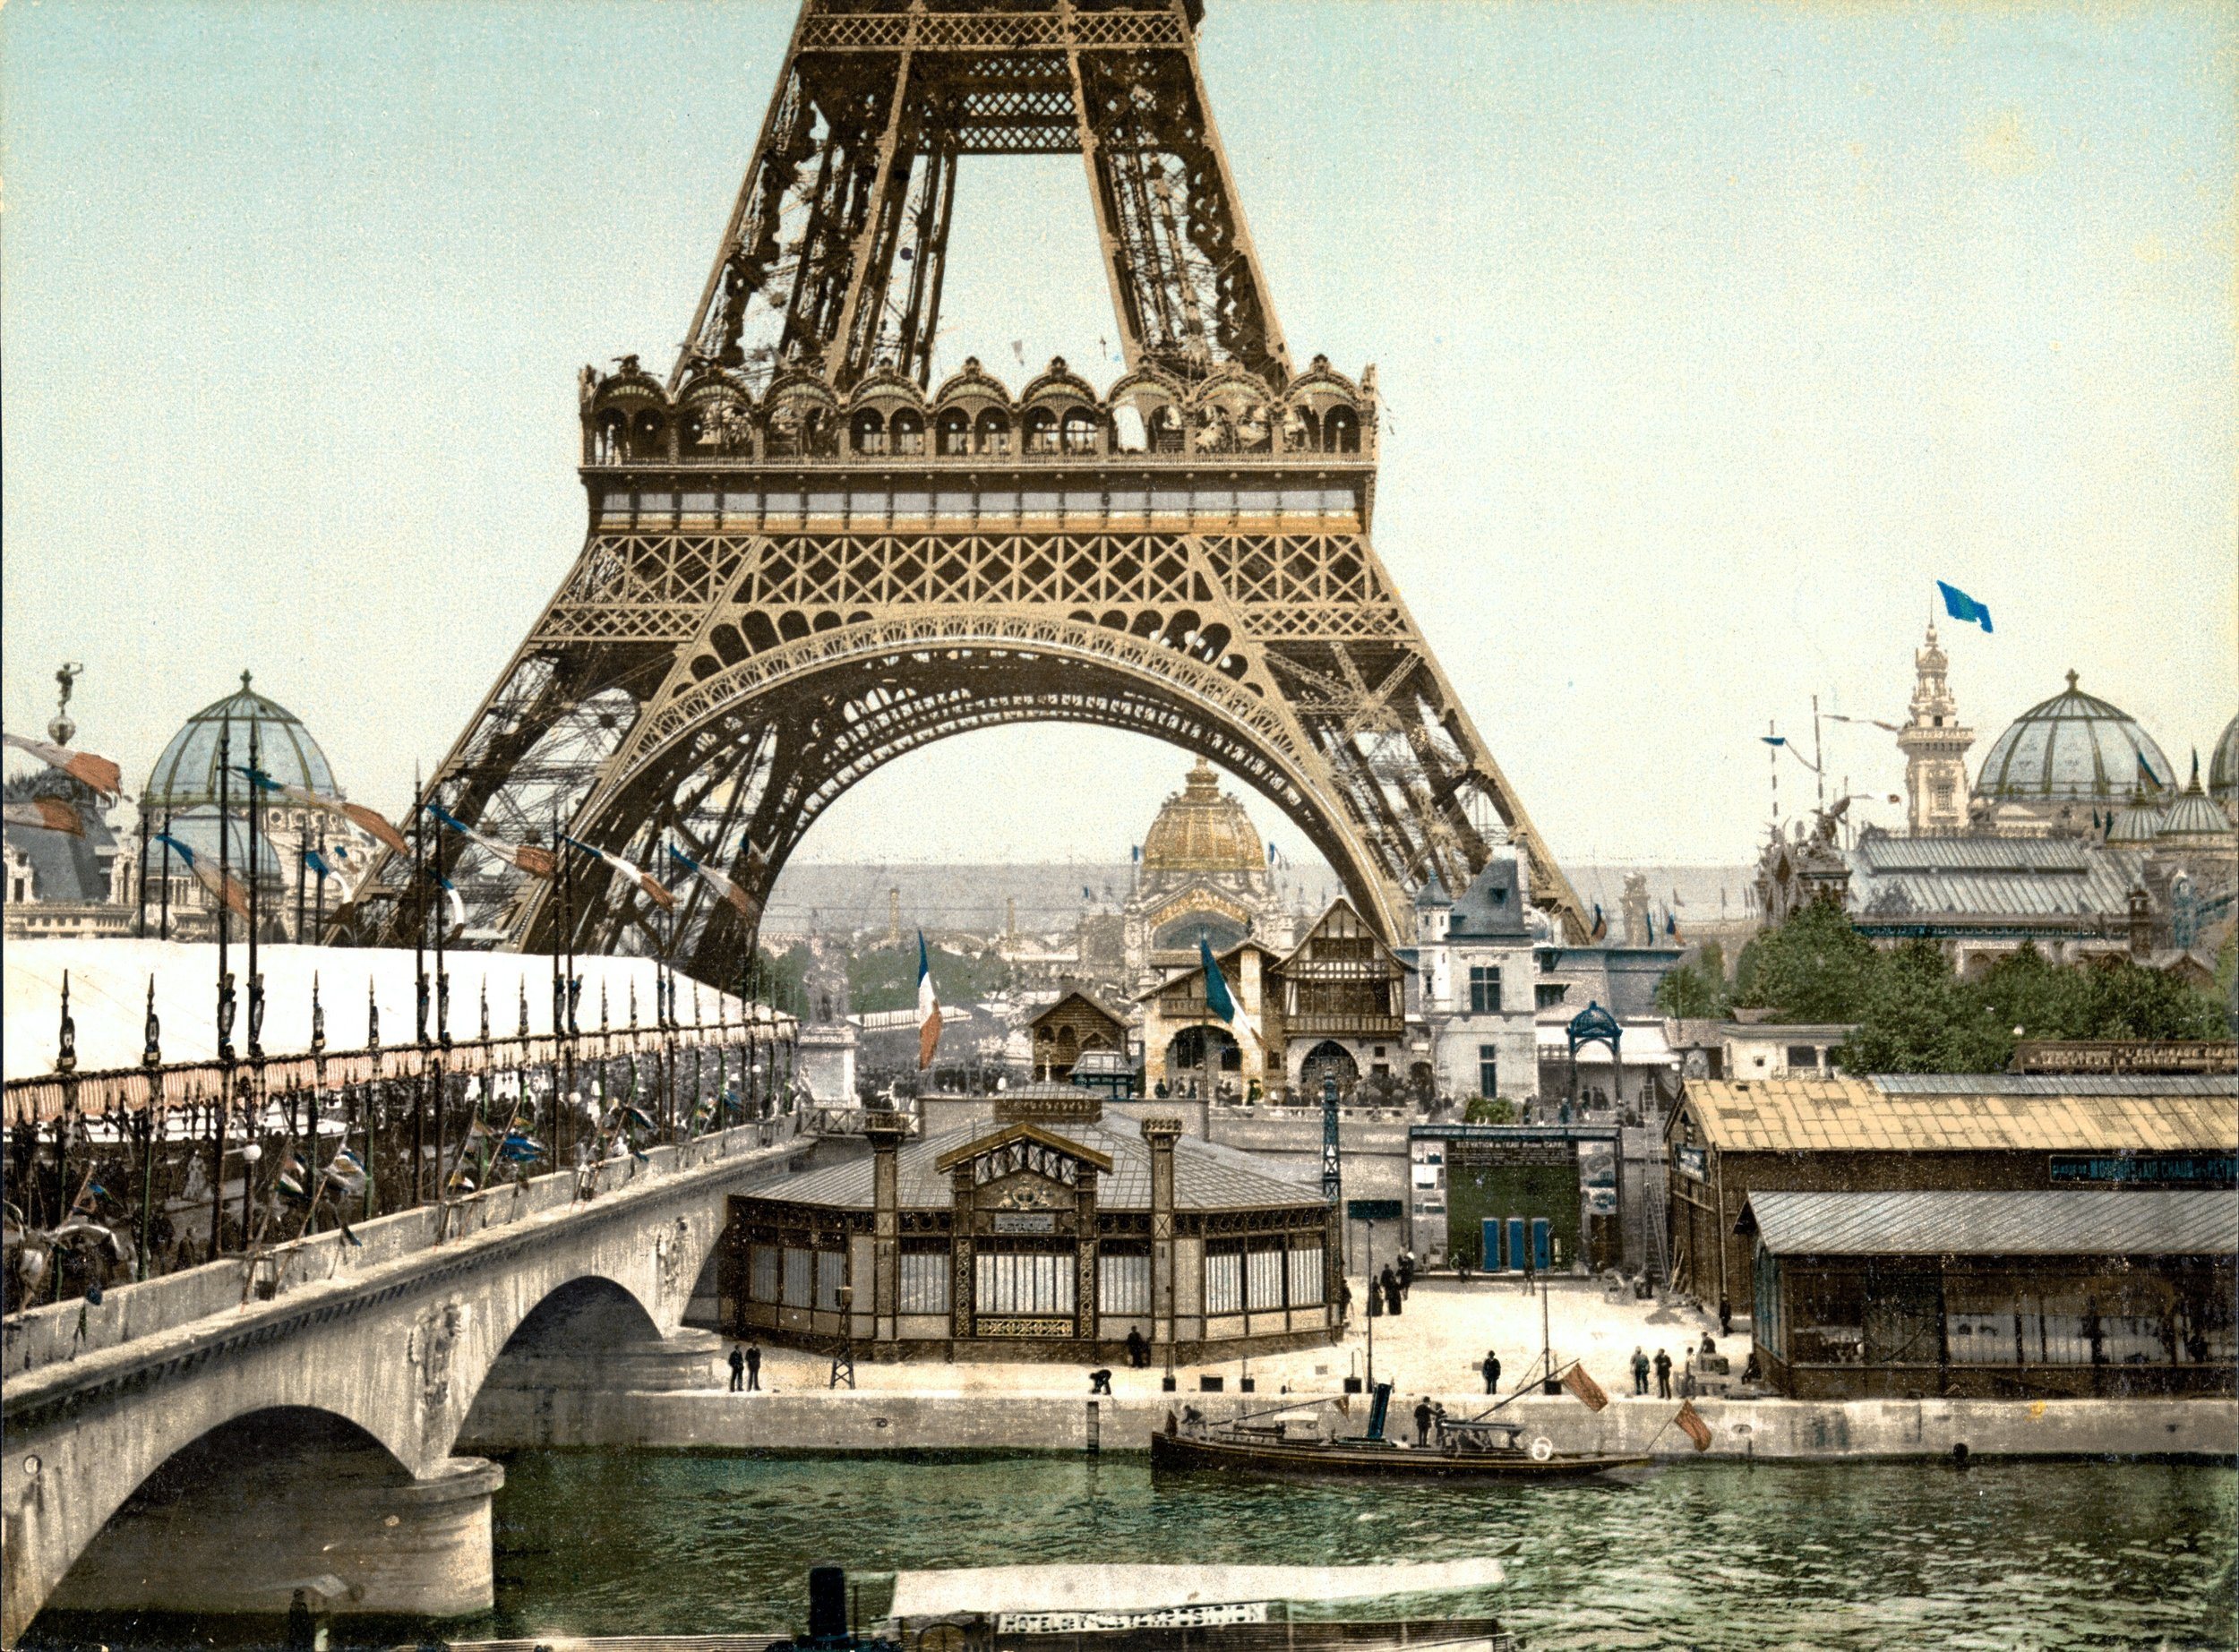 The Eiffel Tower served as a dramatic entrance to the 1889 Exposition Universelle